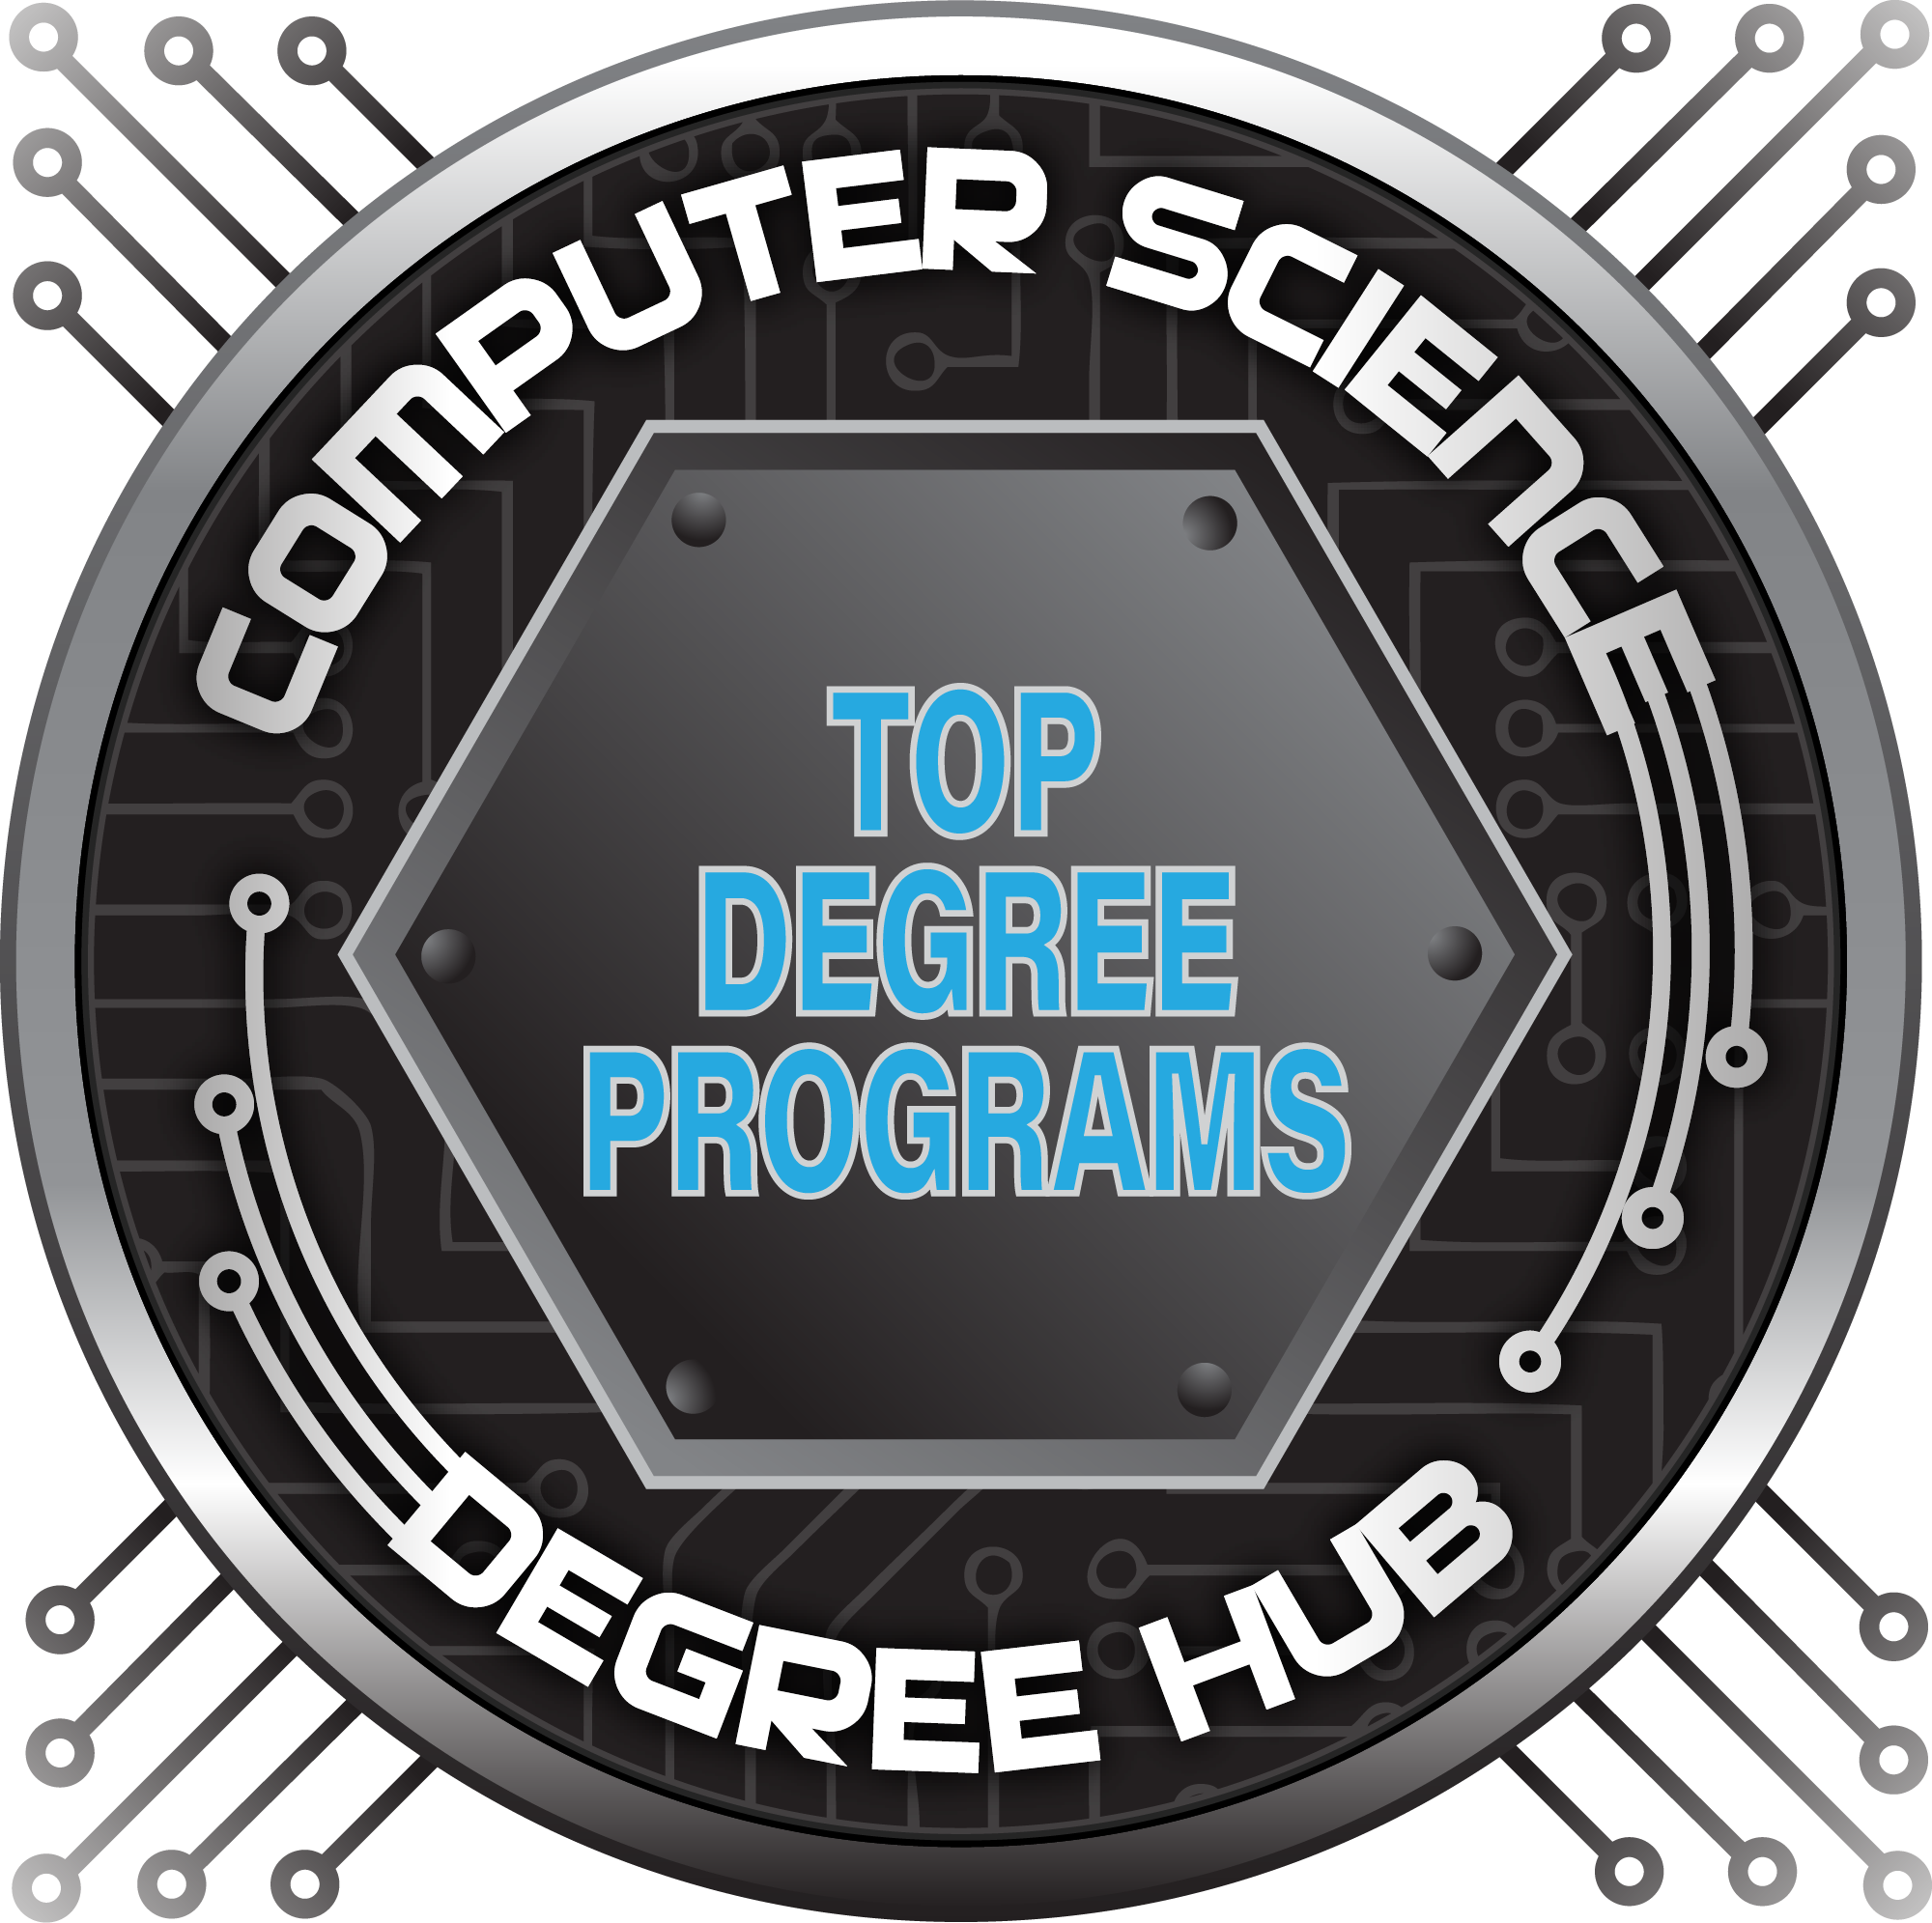 Top 50 Bachelor's in Computer Science Degrees 2019